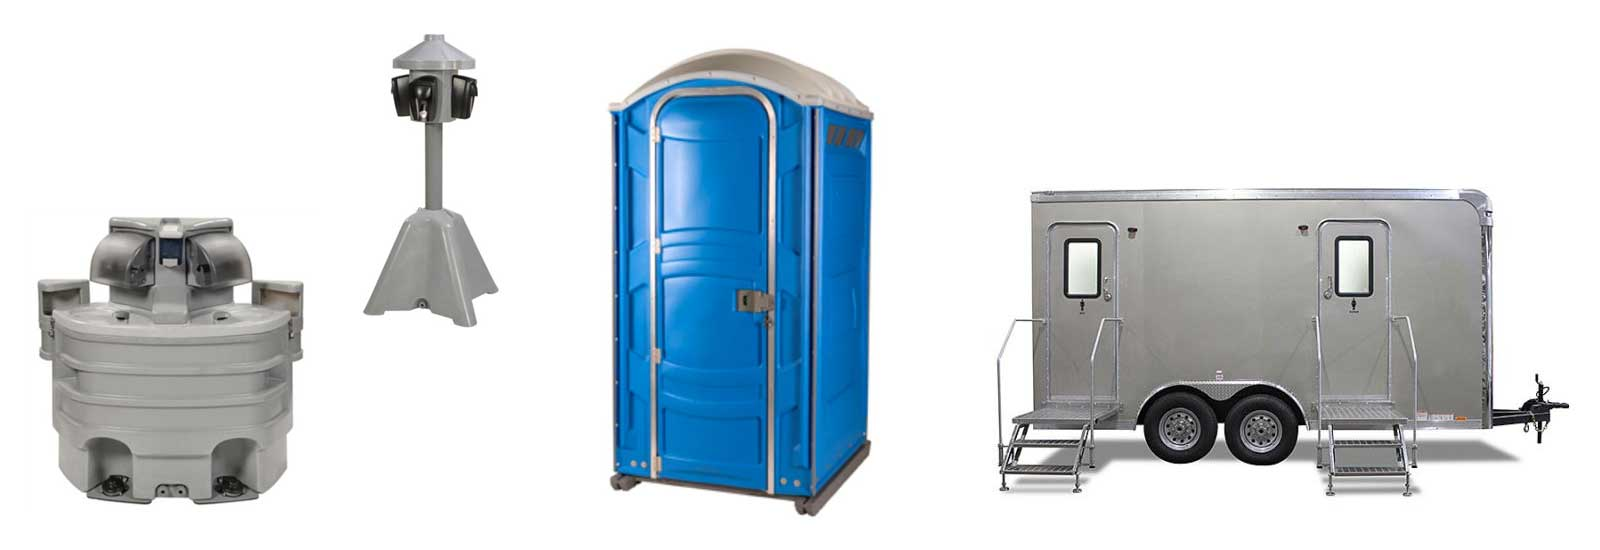 Porta potty rentals in San Antonio Texas, Edinburg, Harlingen, Brownsville, McAllen TX, New Braunfels, San Marcos, Rio Grande Valley